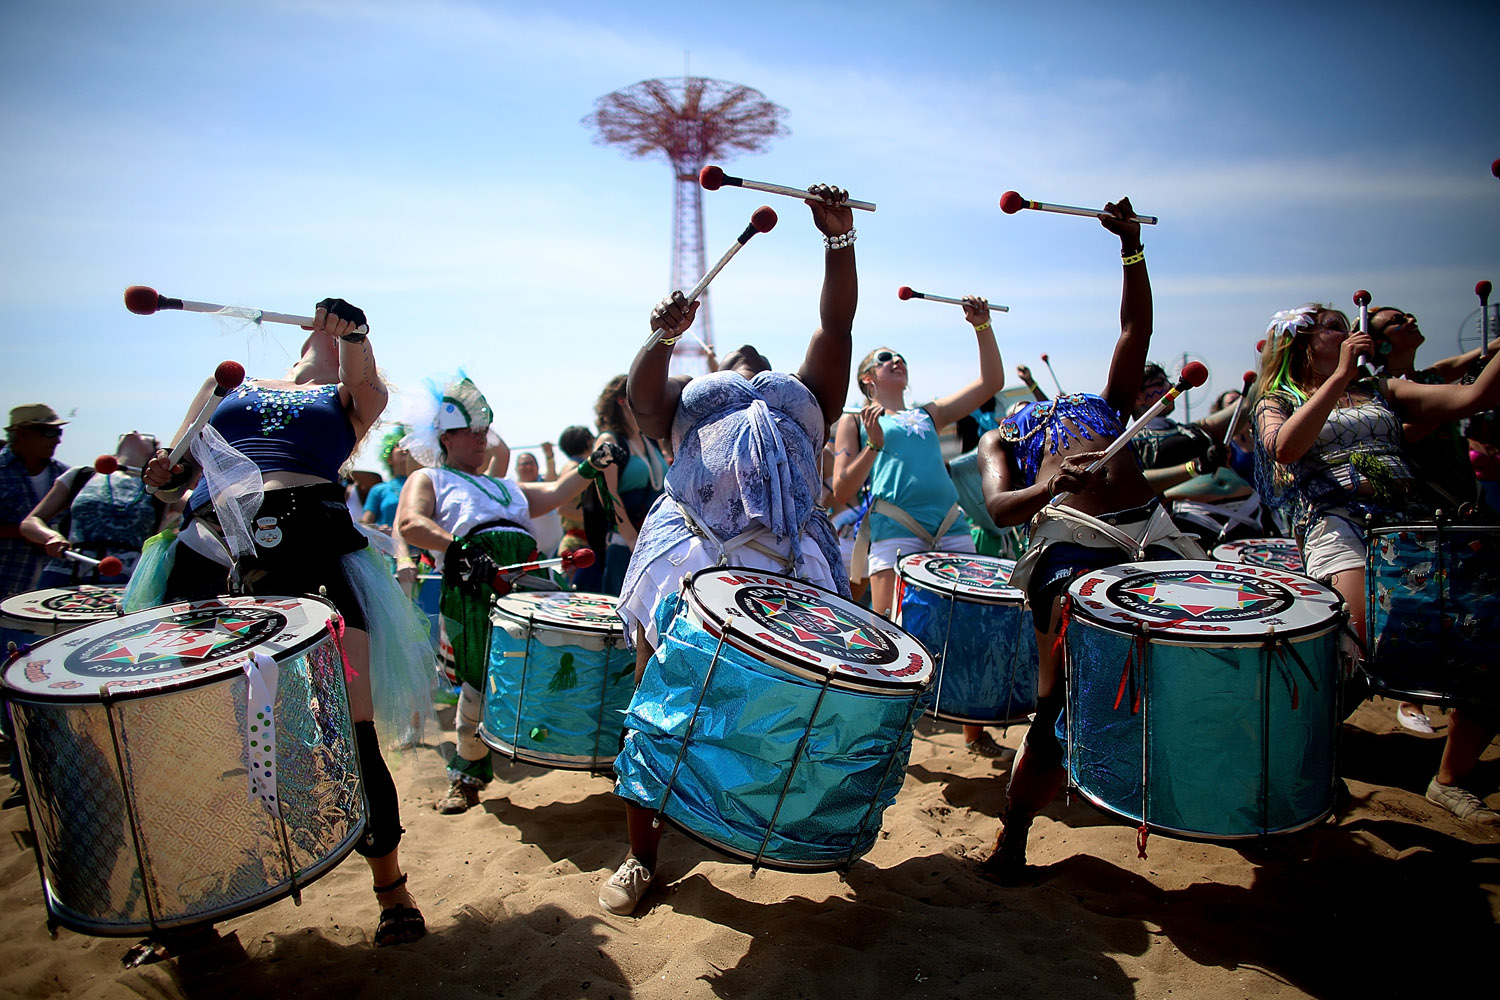 June 22, 2013. Musicians perform on the beach at the 2013 Mermaid Parade at Coney Island in the Brooklyn borough of New York City.